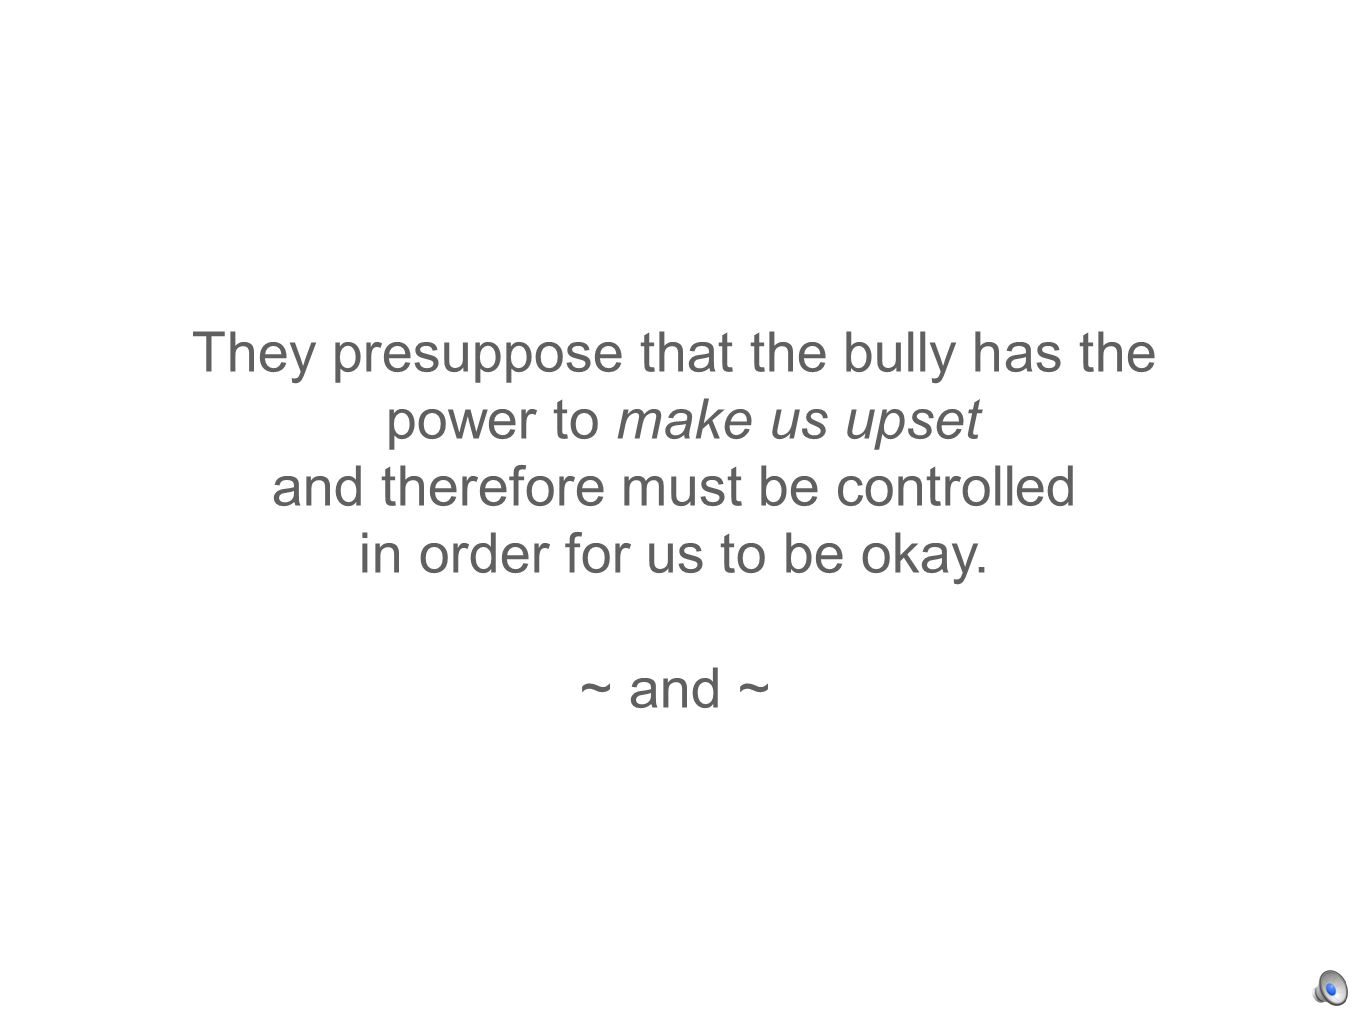 They presuppose that the bully has the power to make us upset and therefore must be controlled in order for us to be okay.